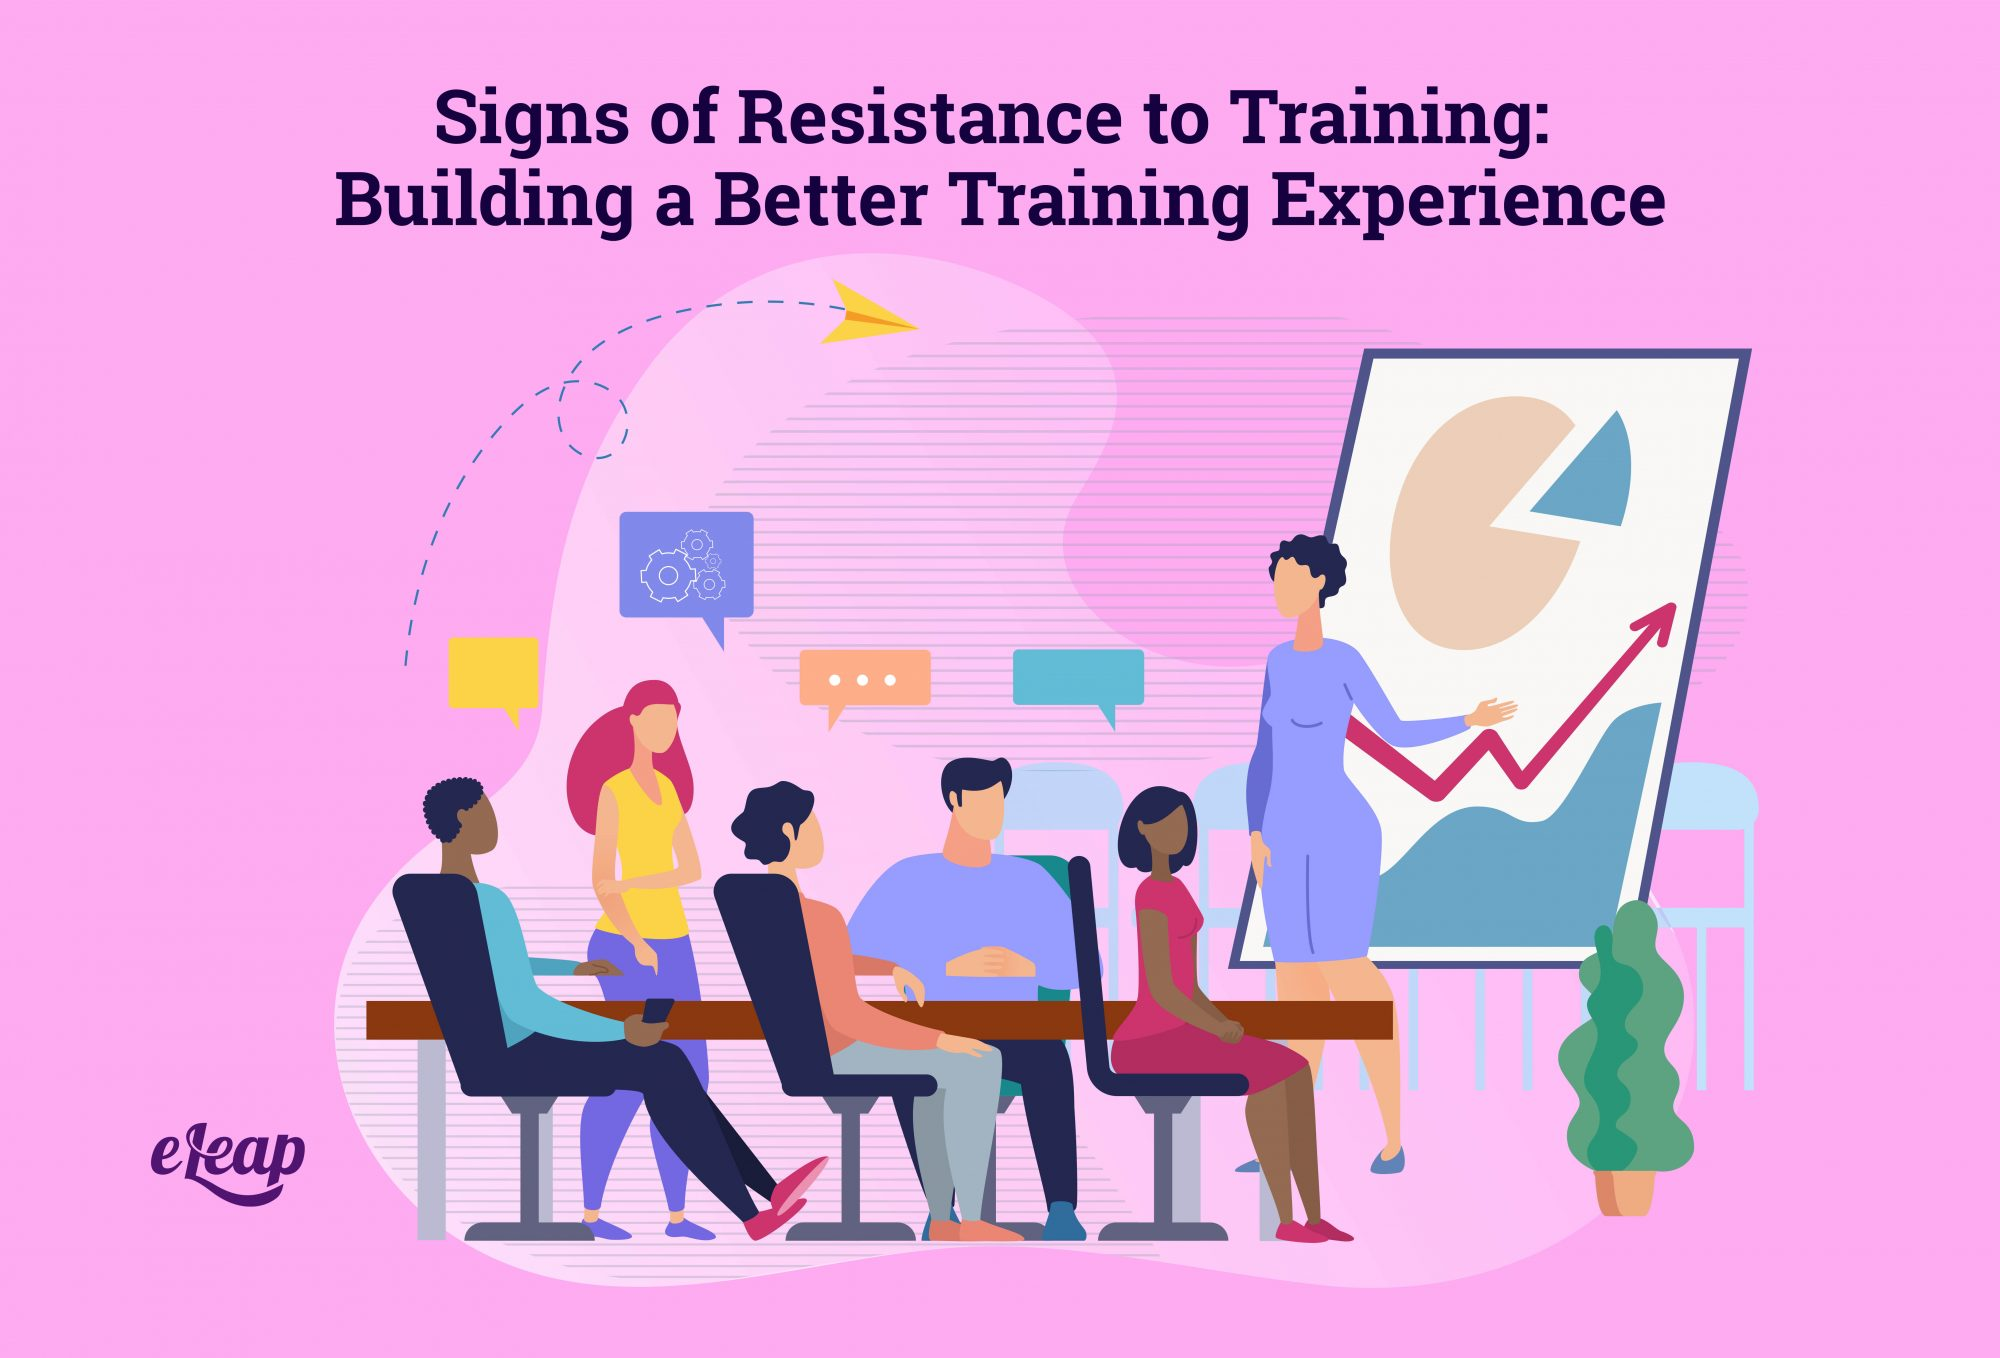 Signs of Resistance to Training: Building a Better Training Experience